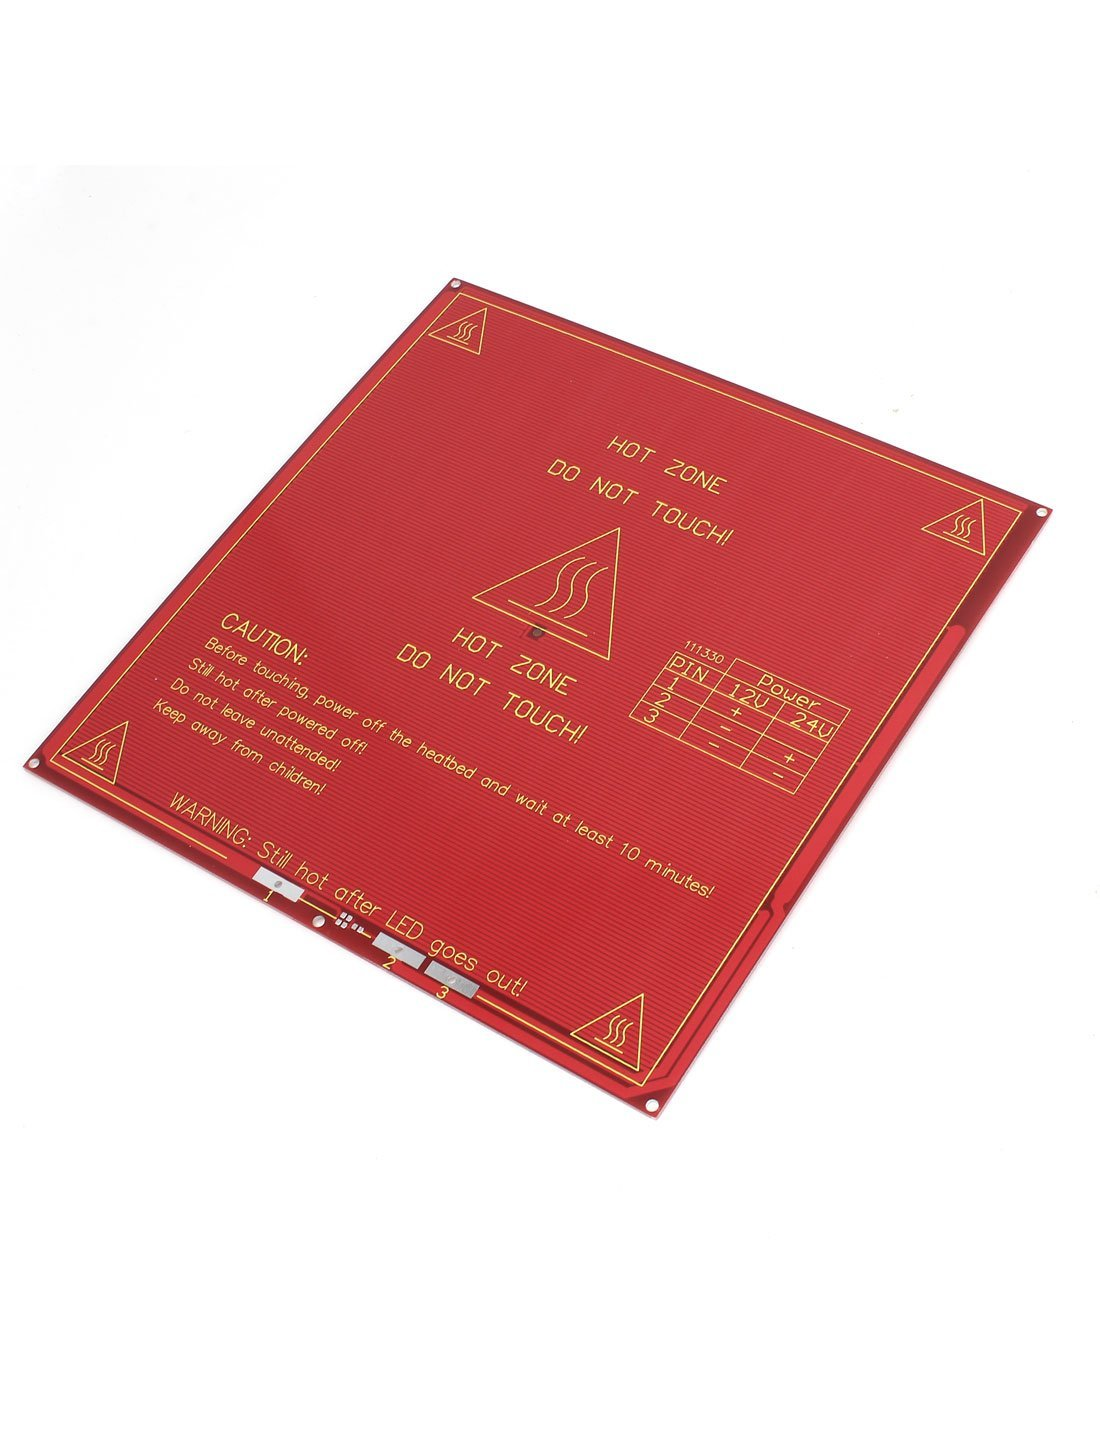 Amazon.com: RepRap Heatbed calor Mk2A cama PCB de la placa ...